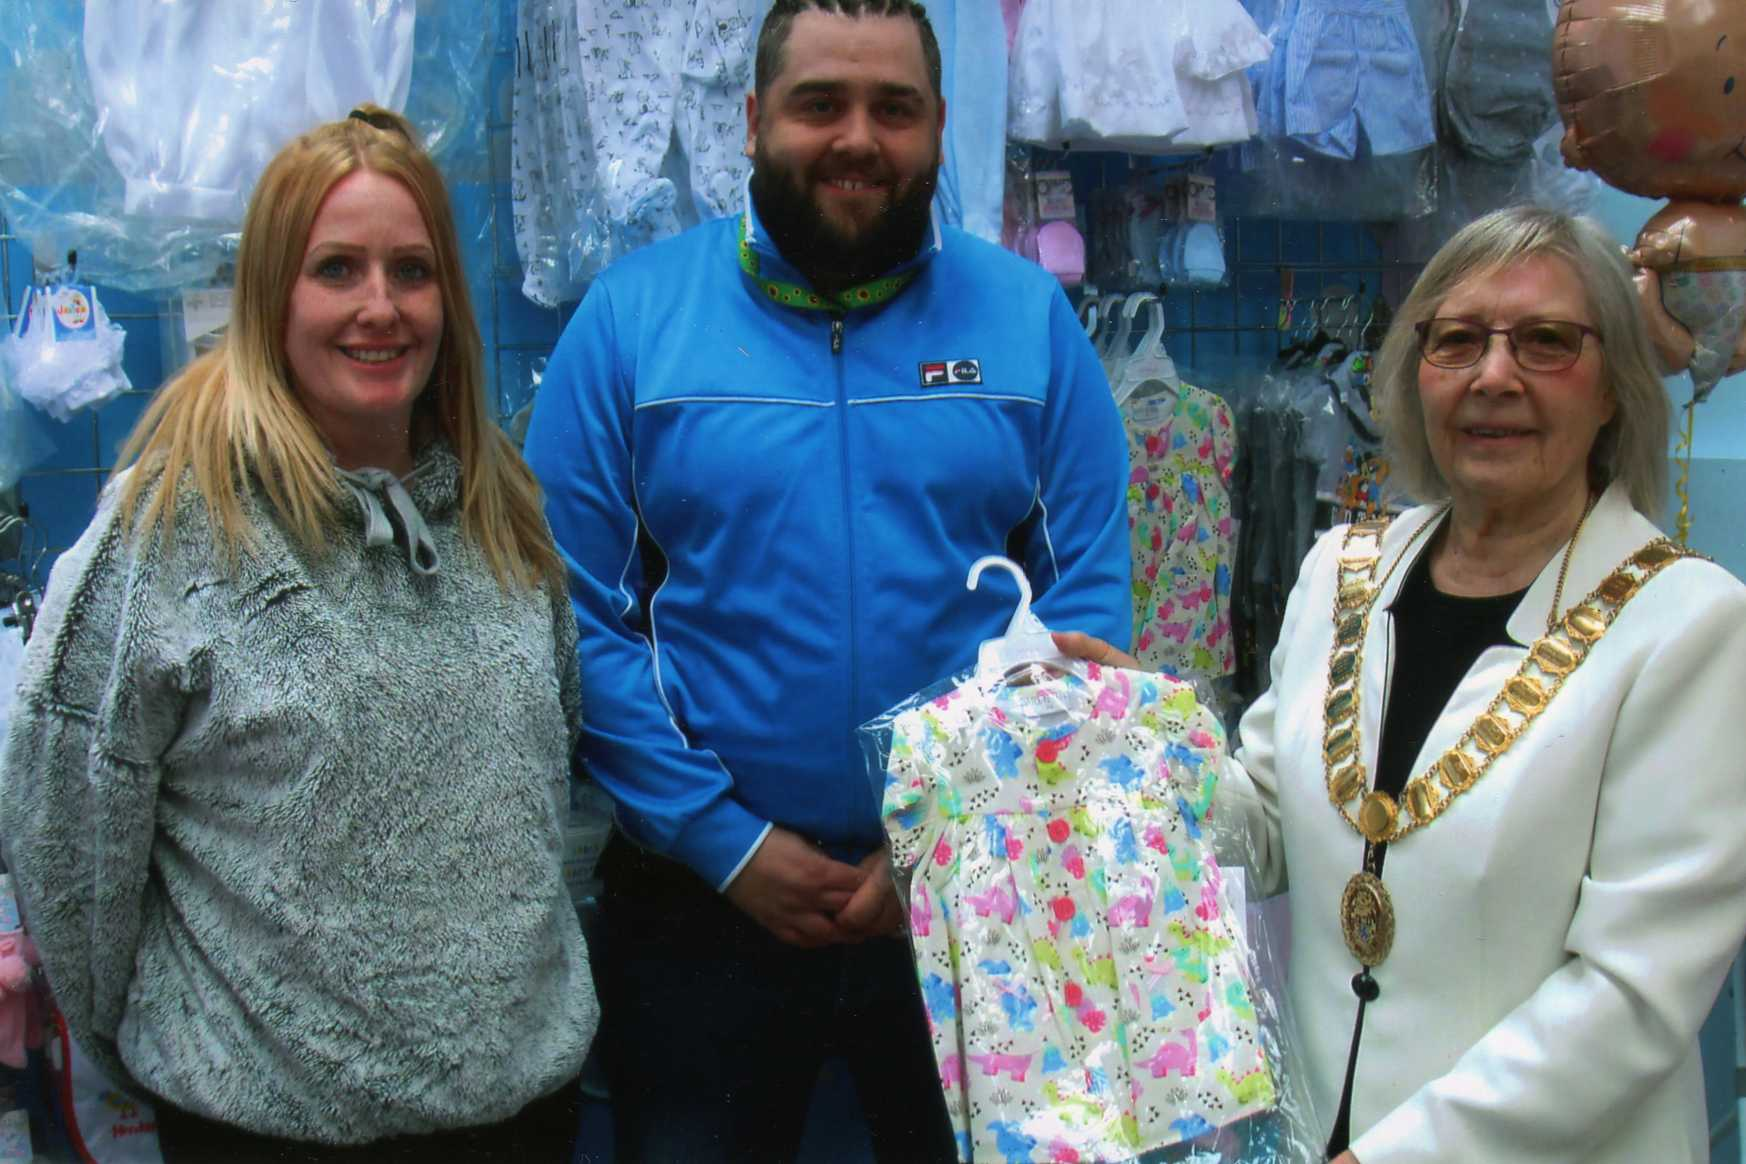 The Mayor of wellington, Cllr Patricia Fairclough, wishing The Baby Den the very best of luck as they opened this morning in Wellington Market